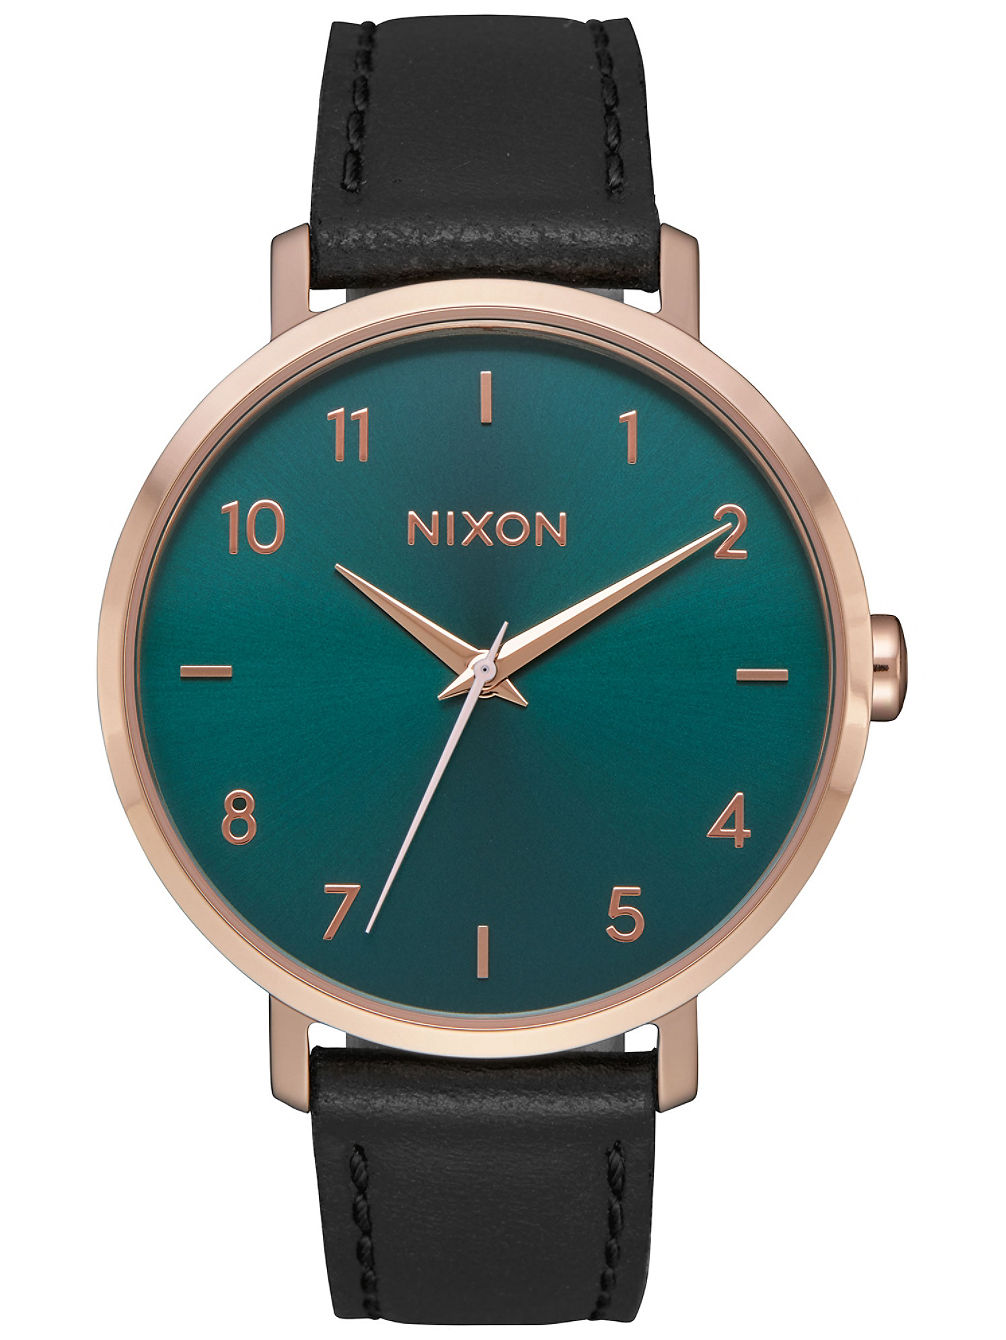 The Arrow Leather Uhr